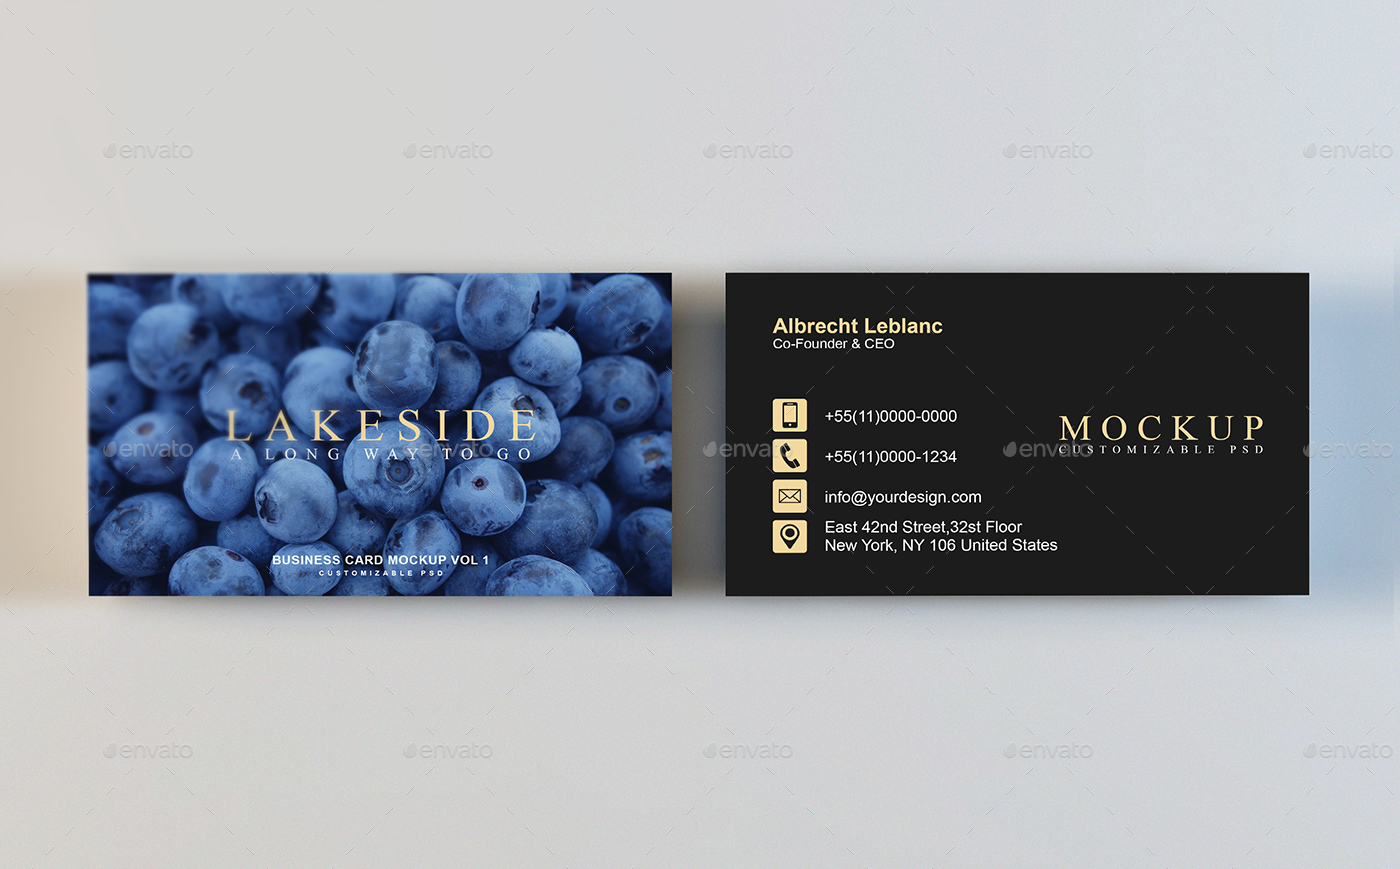 Business card mockup vol 1 by honnumgraphicart graphicriver business card mockup vol 1 4g reheart Image collections